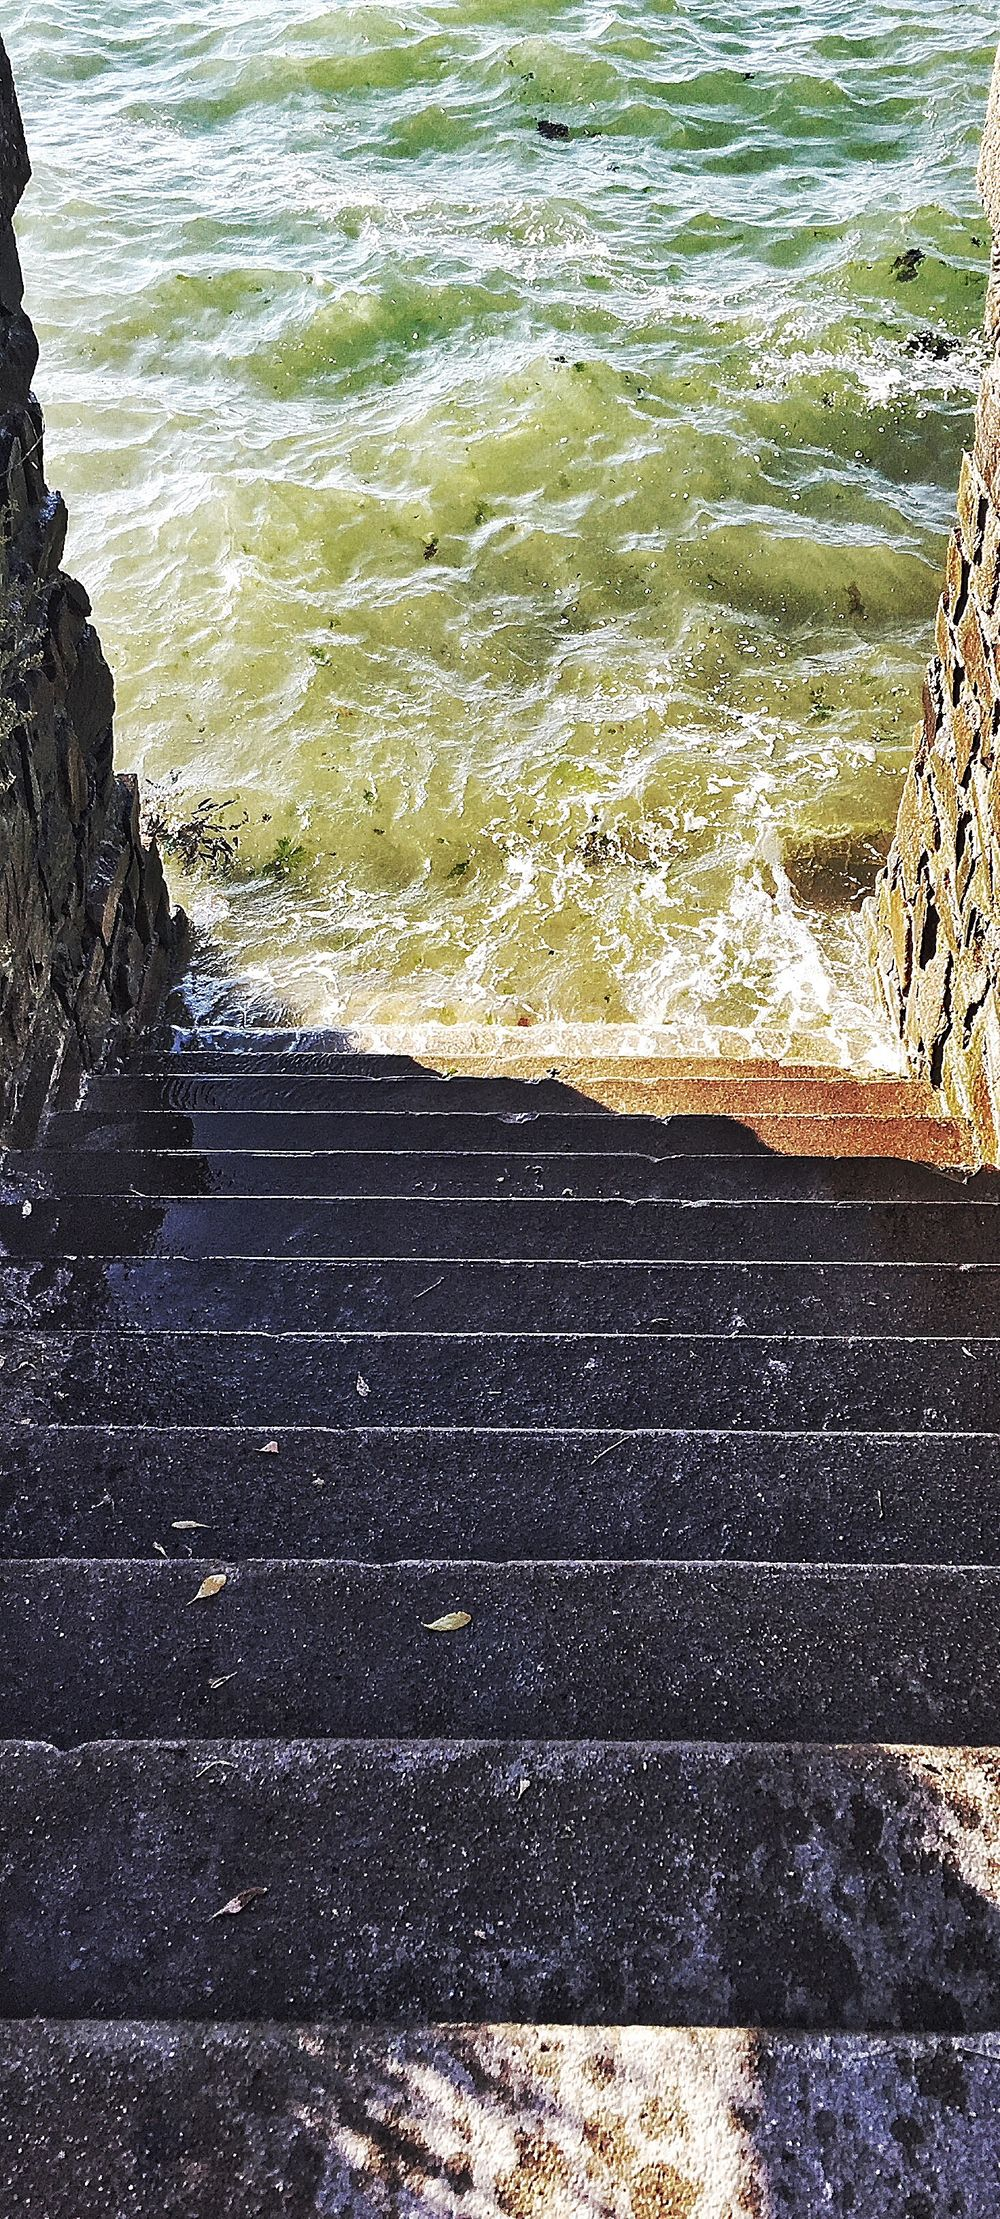 Steps Steps And Staircases Staircase Water Sea Railing Wave Stairs Rippled The Way Forward Shore Outdoors Prefailles Tide Tranquility Step Tranquil Scene Scenics Long No People